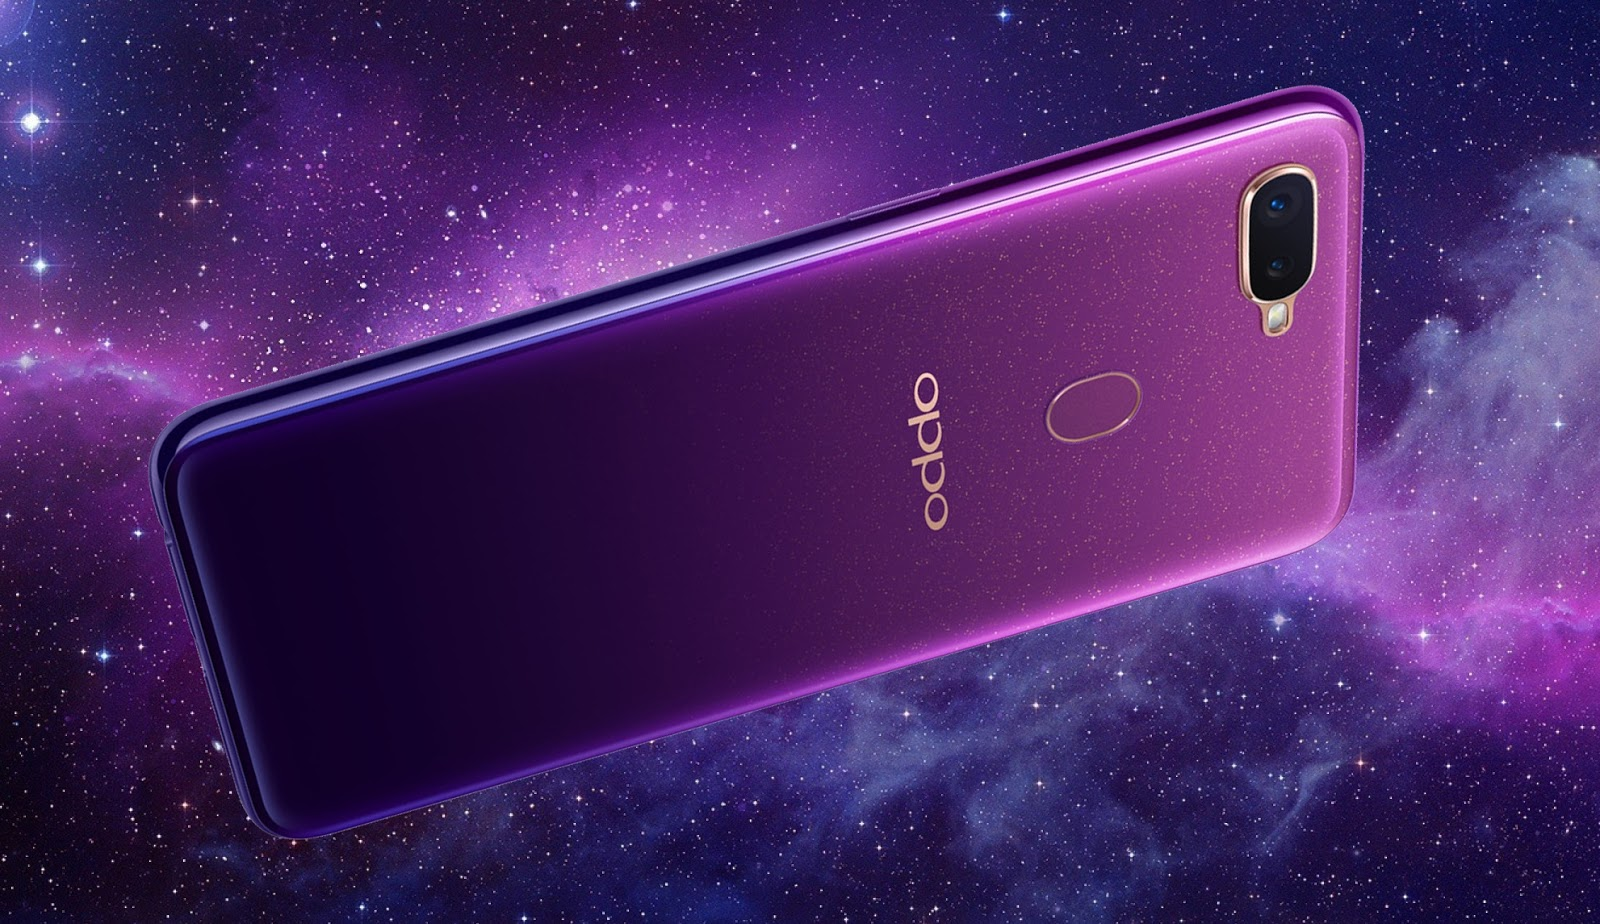 OPPO F9 Starry Purple